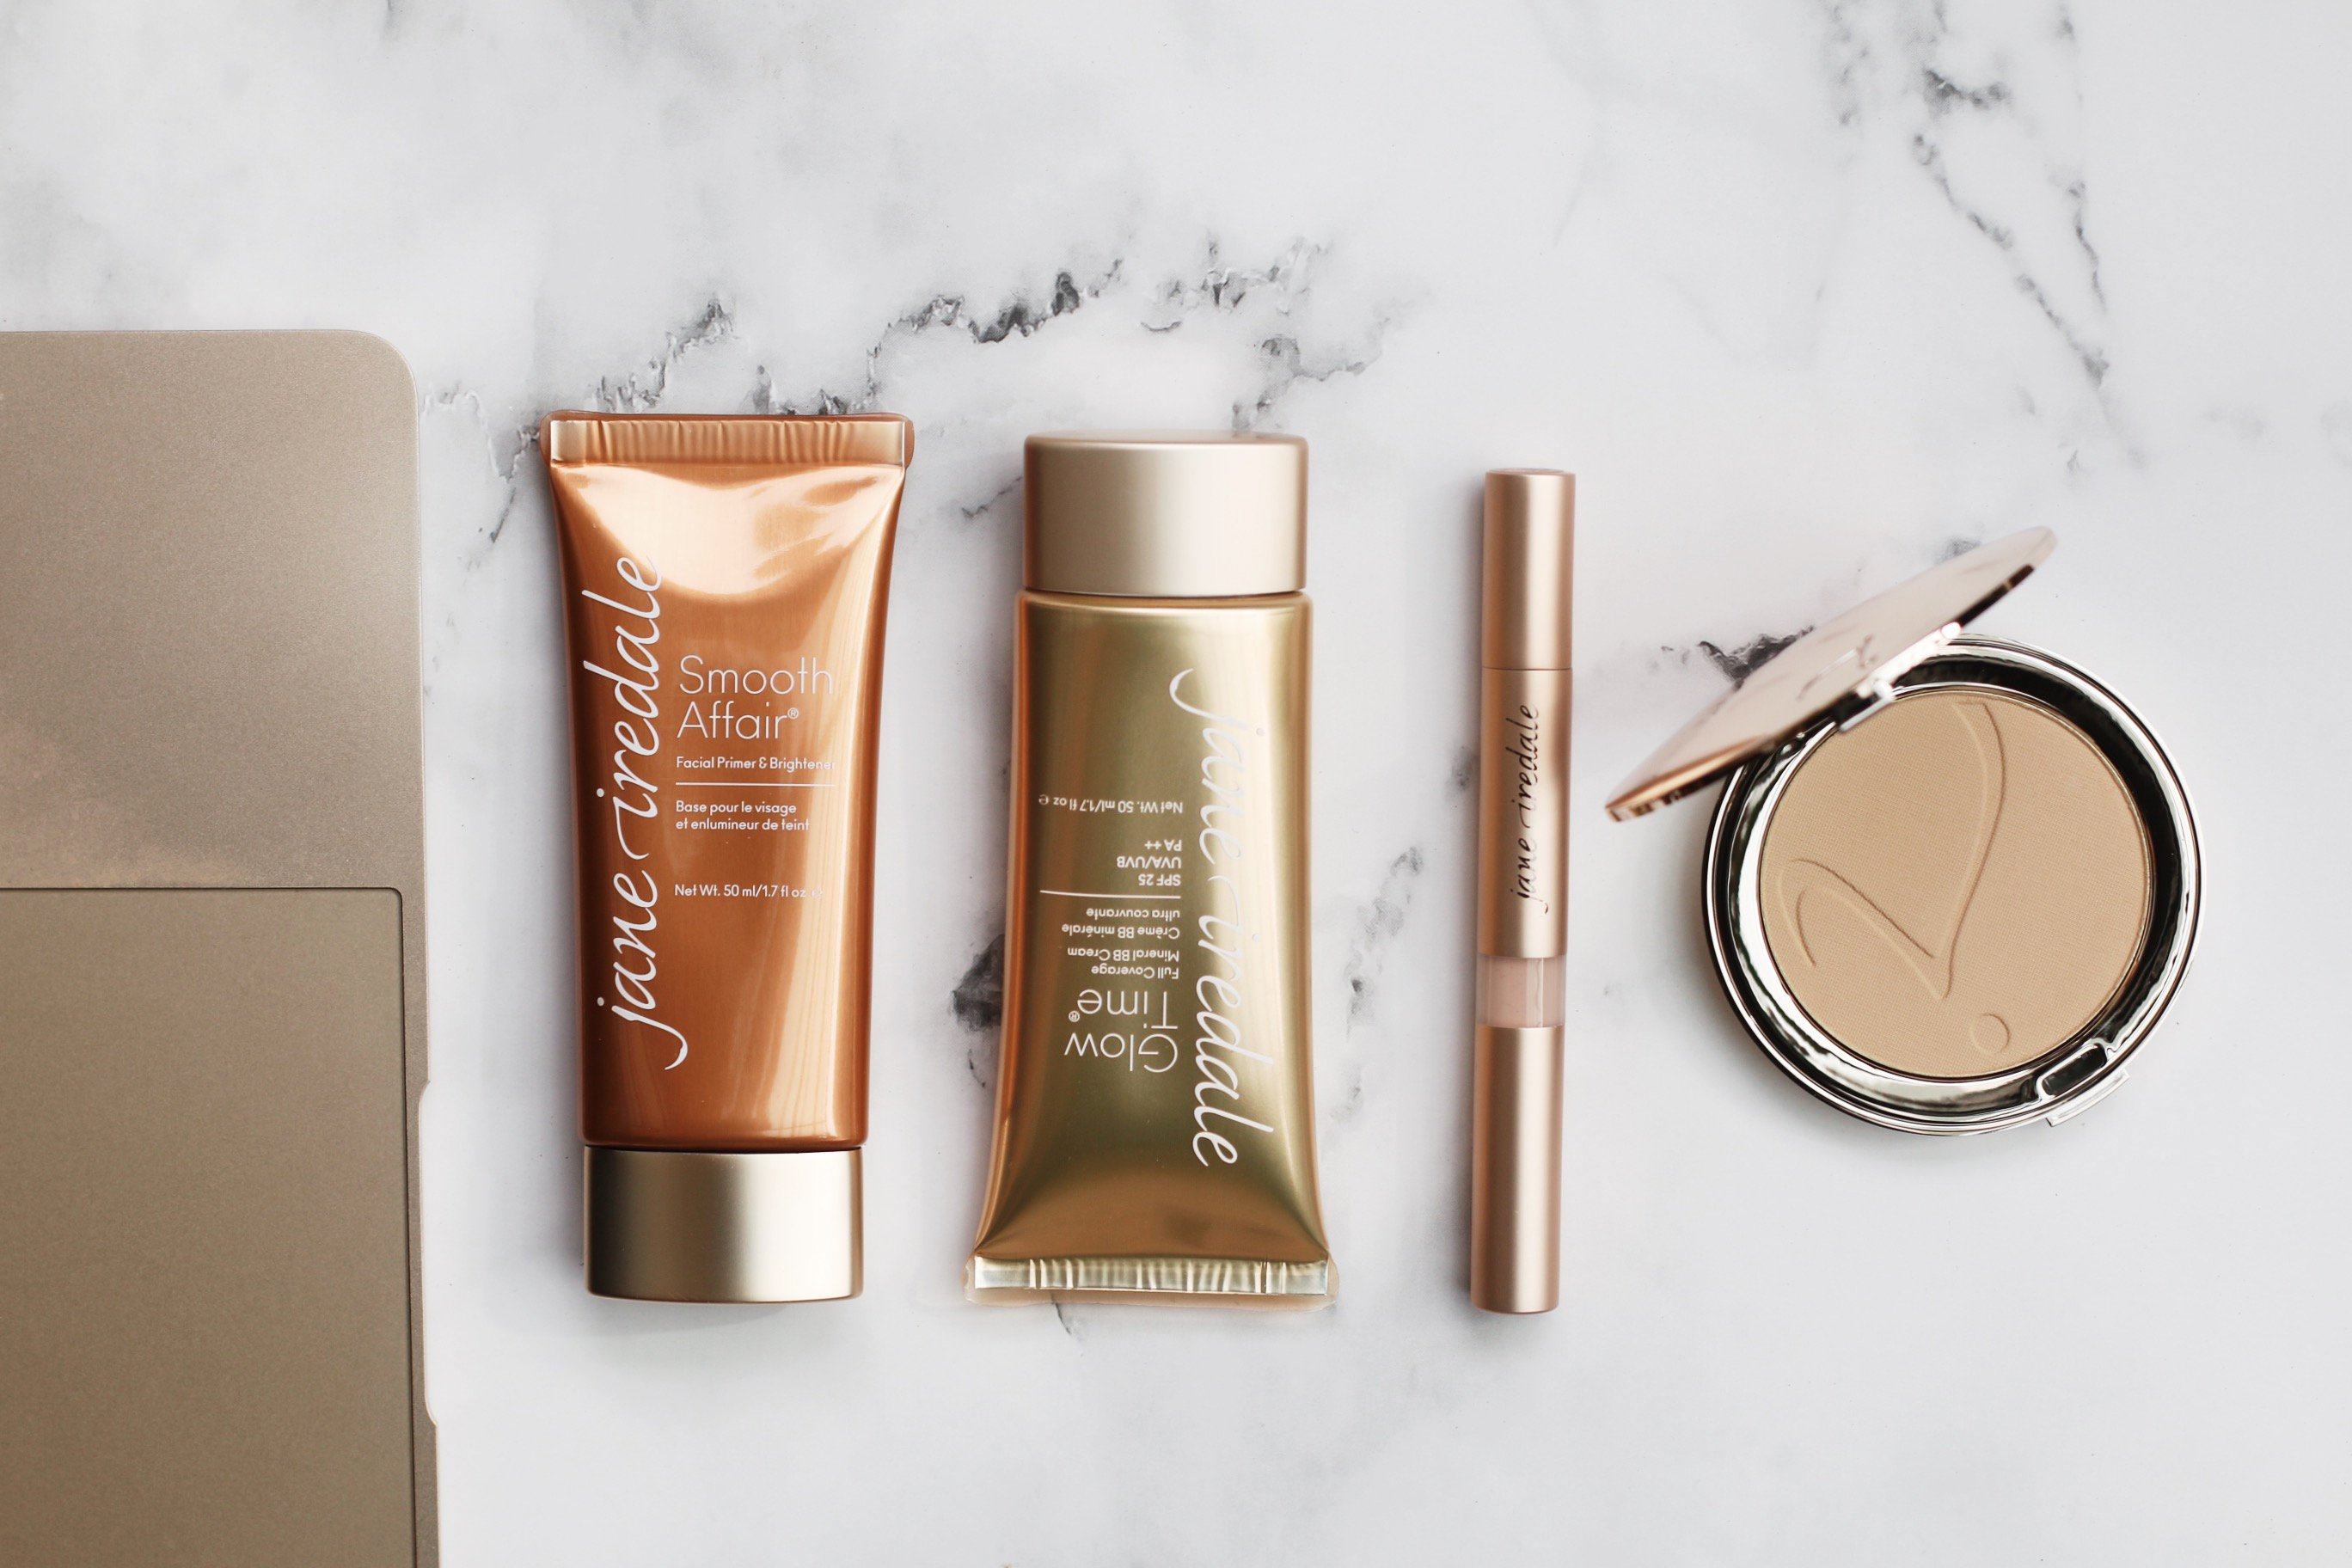 tips for brightening skin include mixing Smooth Affair Primer and Glow Time BB Cream